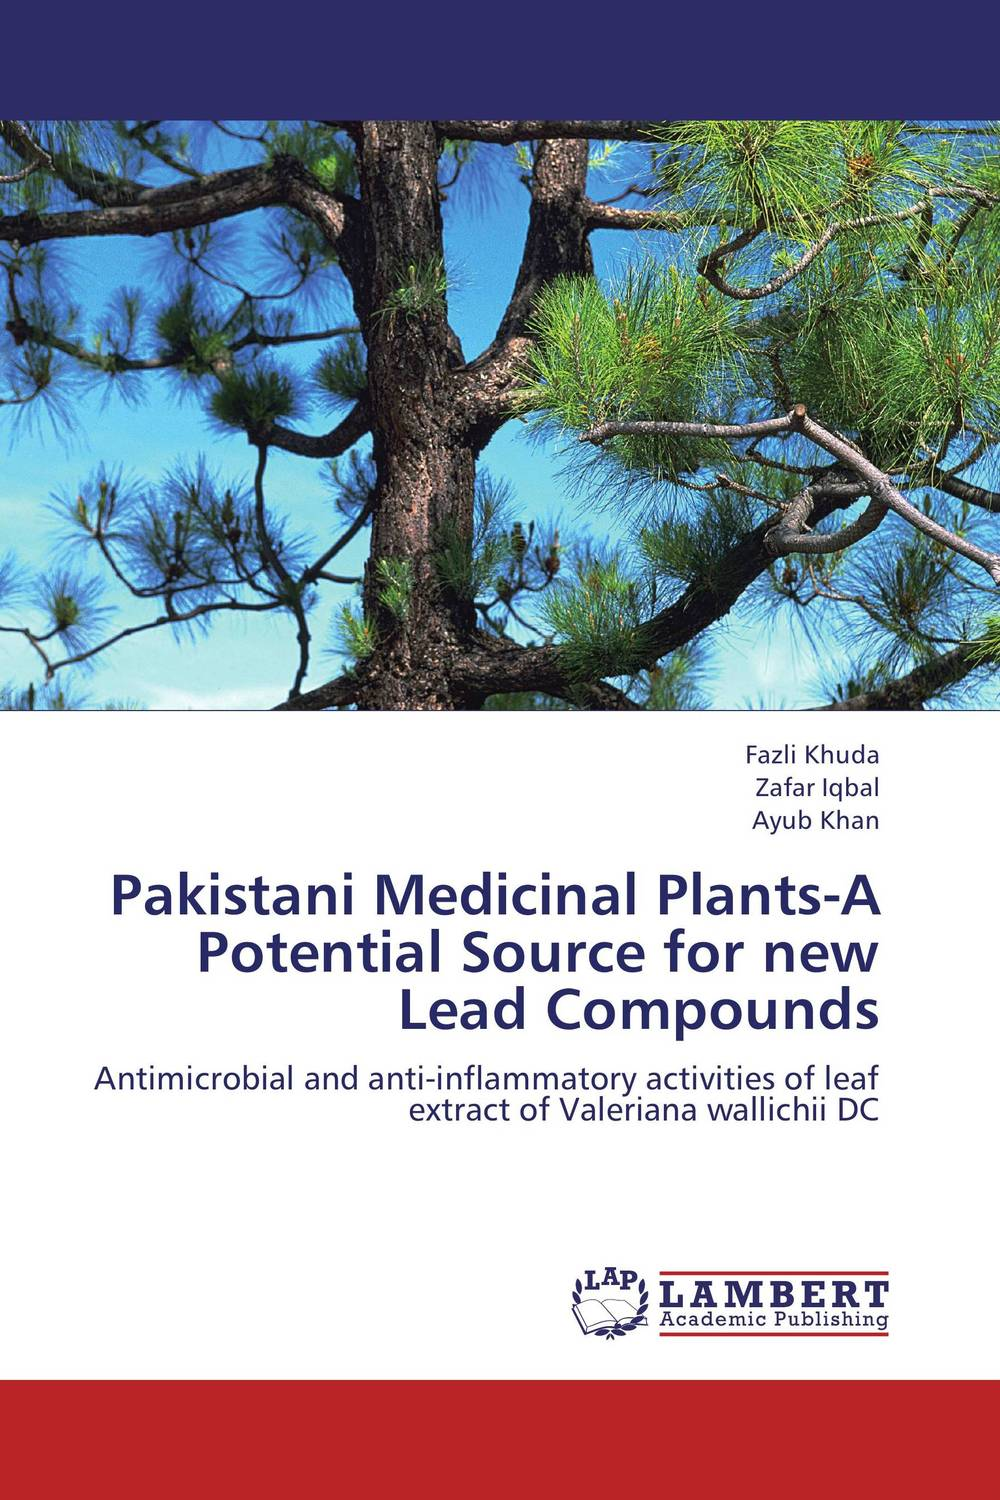 Pakistani Medicinal Plants-A Potential Source for new Lead Compounds george varghese diana john and solomon habtemariam medicinal plants for kidney stone a monograph